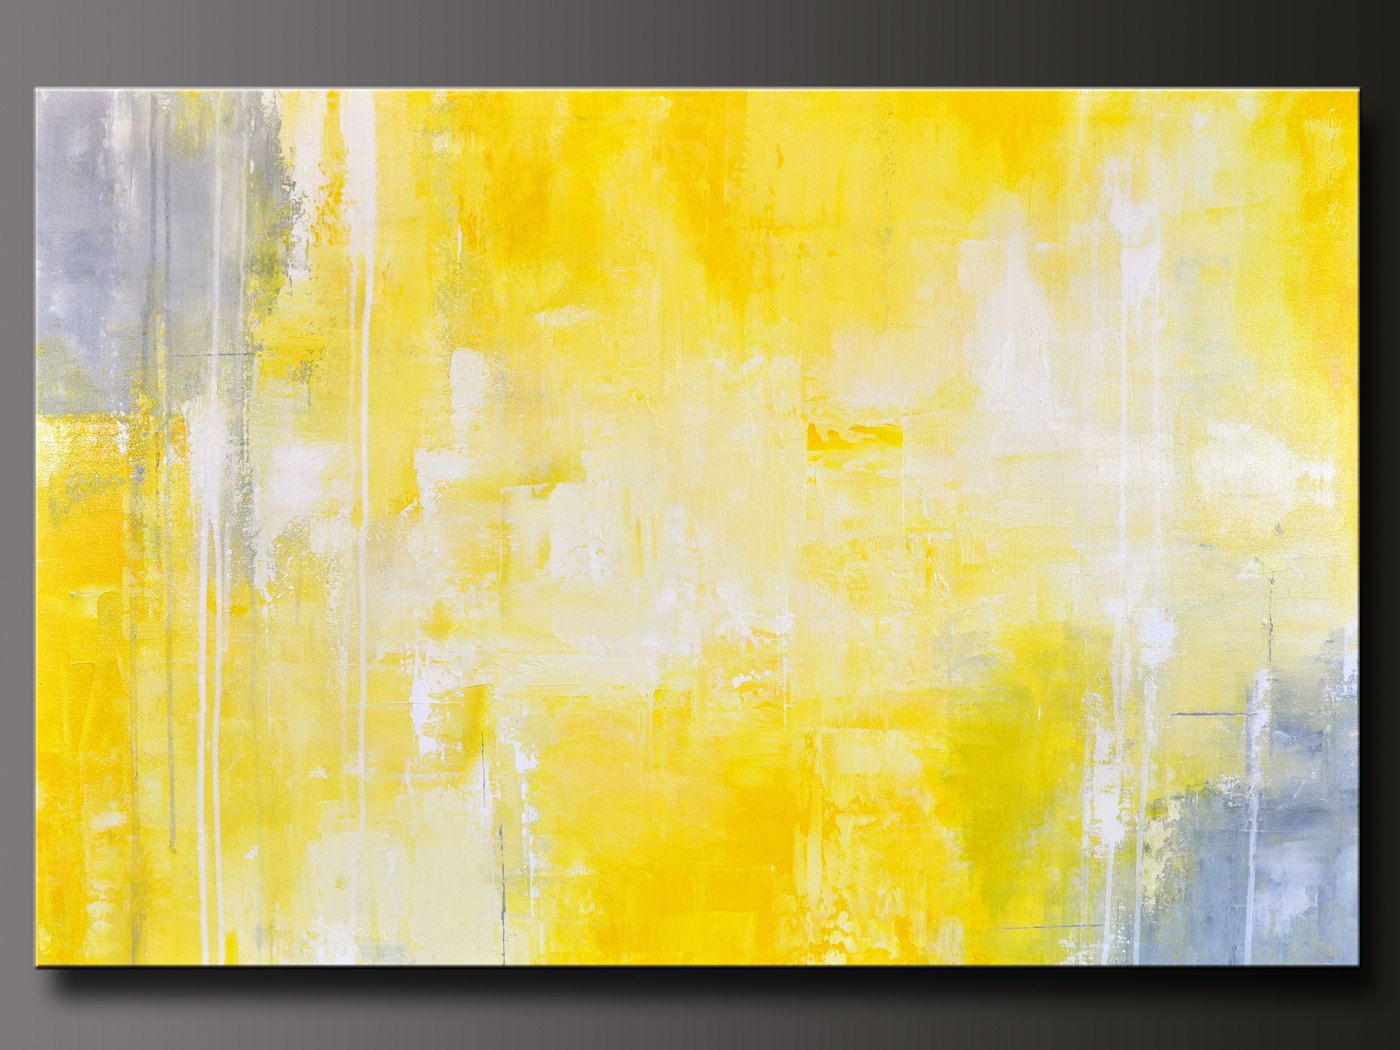 Mustard Yellow Wall Art Lovely Abstract In Yellow 13 - Diy Painting Yellow Abstract - HD Wallpaper